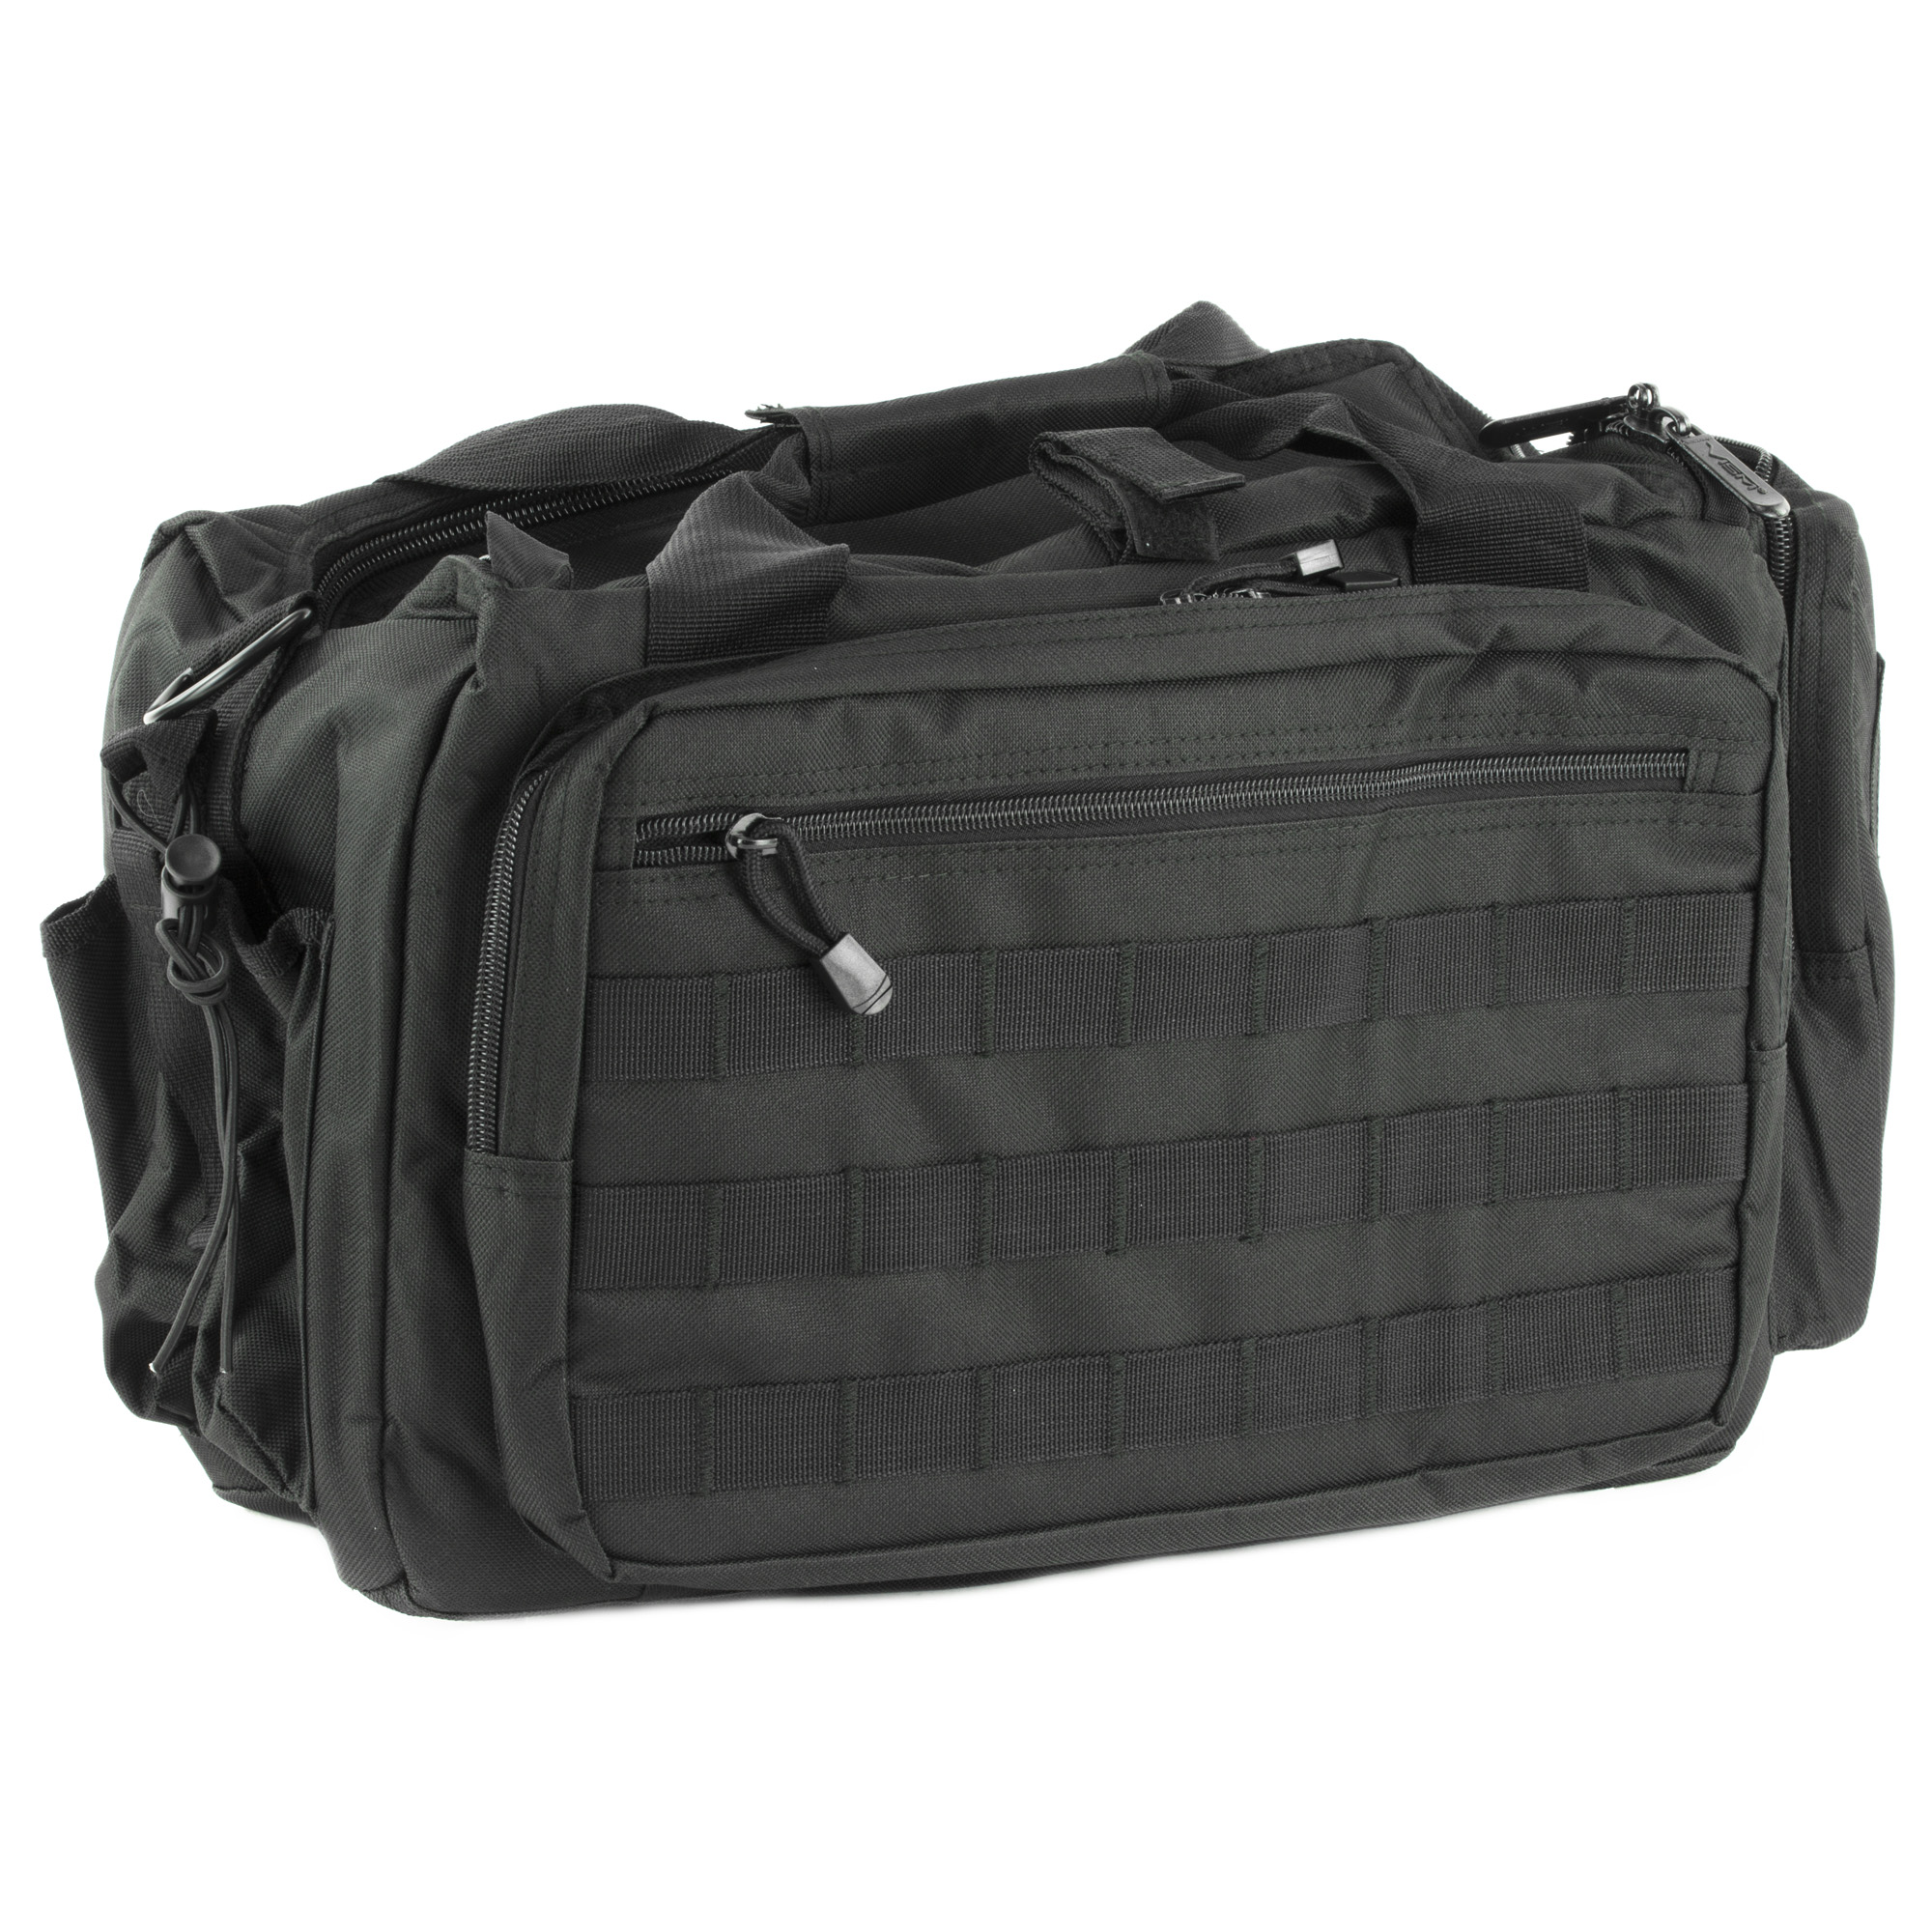 NCSTAR Ncstar Competition Range Bag Blk